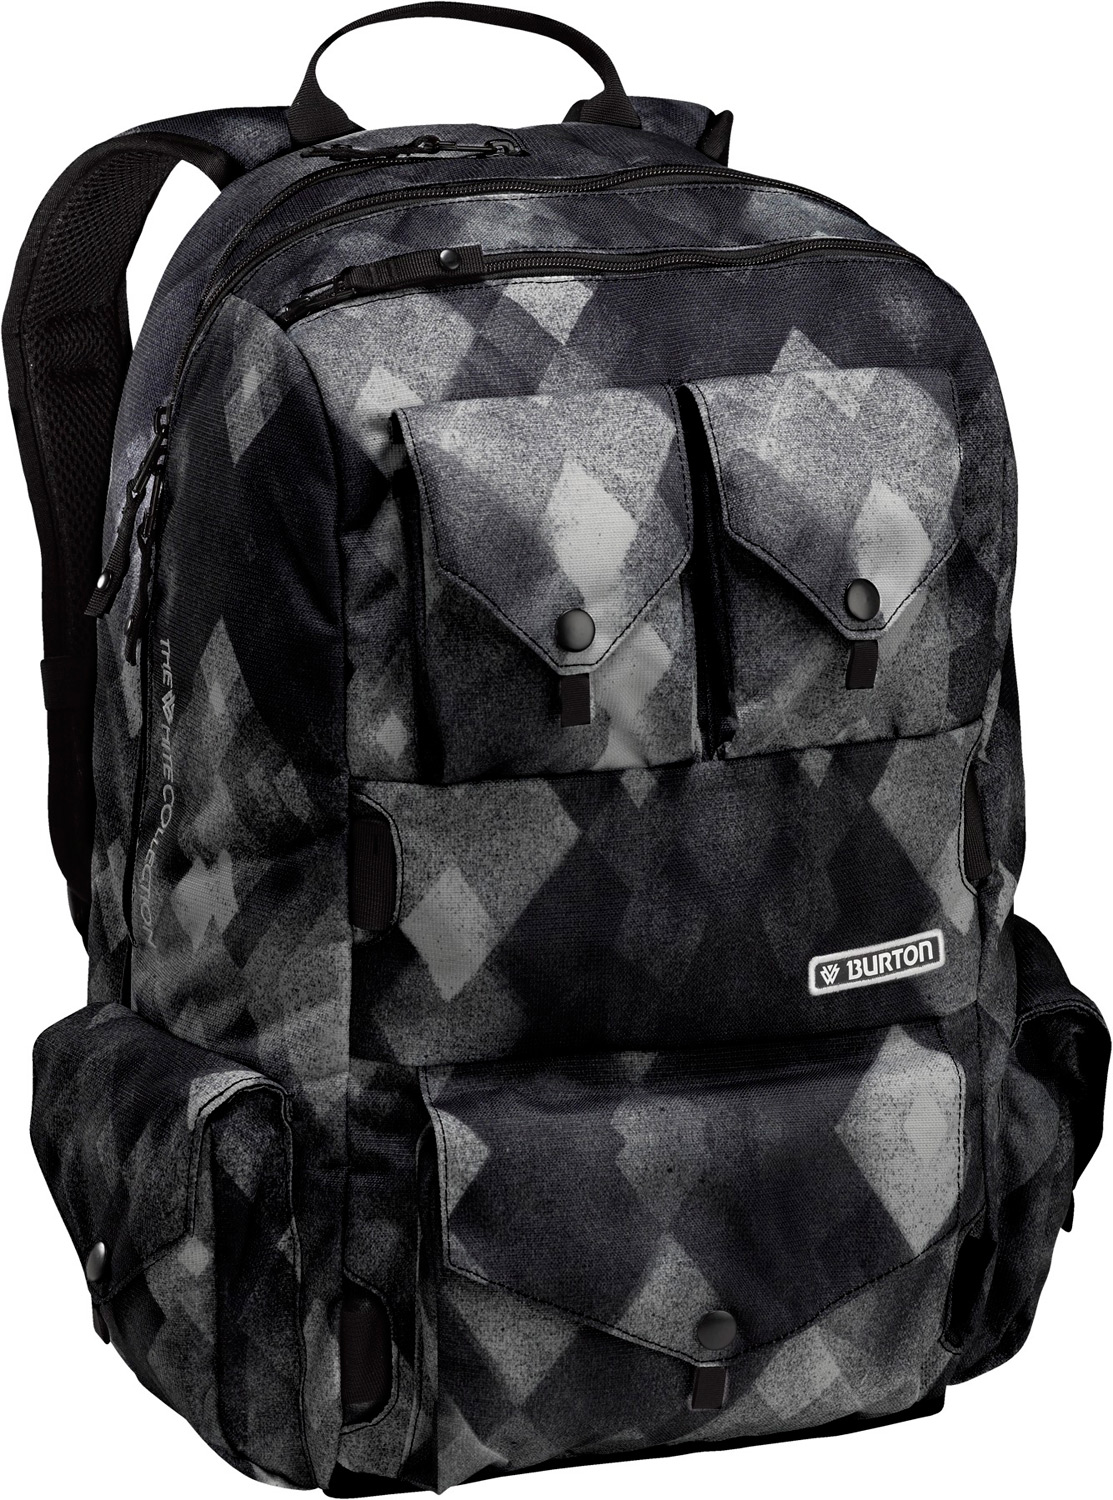 Snowboard Shaun white's ultimate daypack. Live the dream with first class features and signature Twc art inside. Hideaway skate straps for a clean look when you're on a roll.Key Features of the Burton The White Collection Backpack: Fabrication: 600Dx1200D Polyester Hideaway Skate carry Easy access, Side-Entry Padded Laptop compartment [9in x 12in x 2in] [24cm x 31cm x 5cm] oversized Studio Headphone Sunglass / Sound Pocket Signature Shaun white Print Lining [20in x 10in x 7in] [50cm x 25cm x 17cm] 30L - $57.95